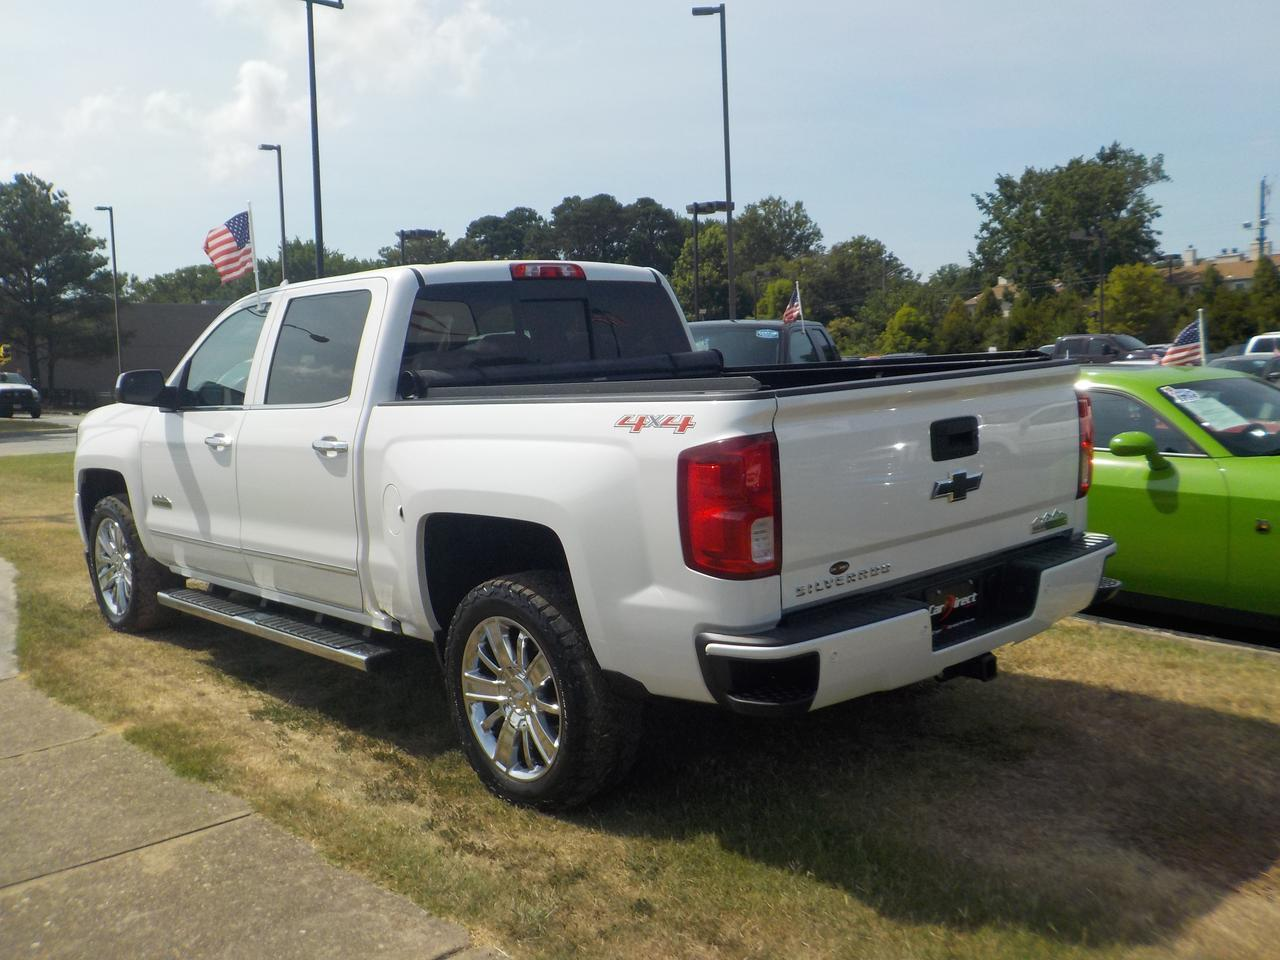 2016 CHEVROLET SILVERADO HIGH COUNTRY CREW CAB 4X4, HEATED & COOLED SEATING, BLUETOOTH WIRELESS, NAVIGATION, PARKING SENSORS! Virginia Beach VA